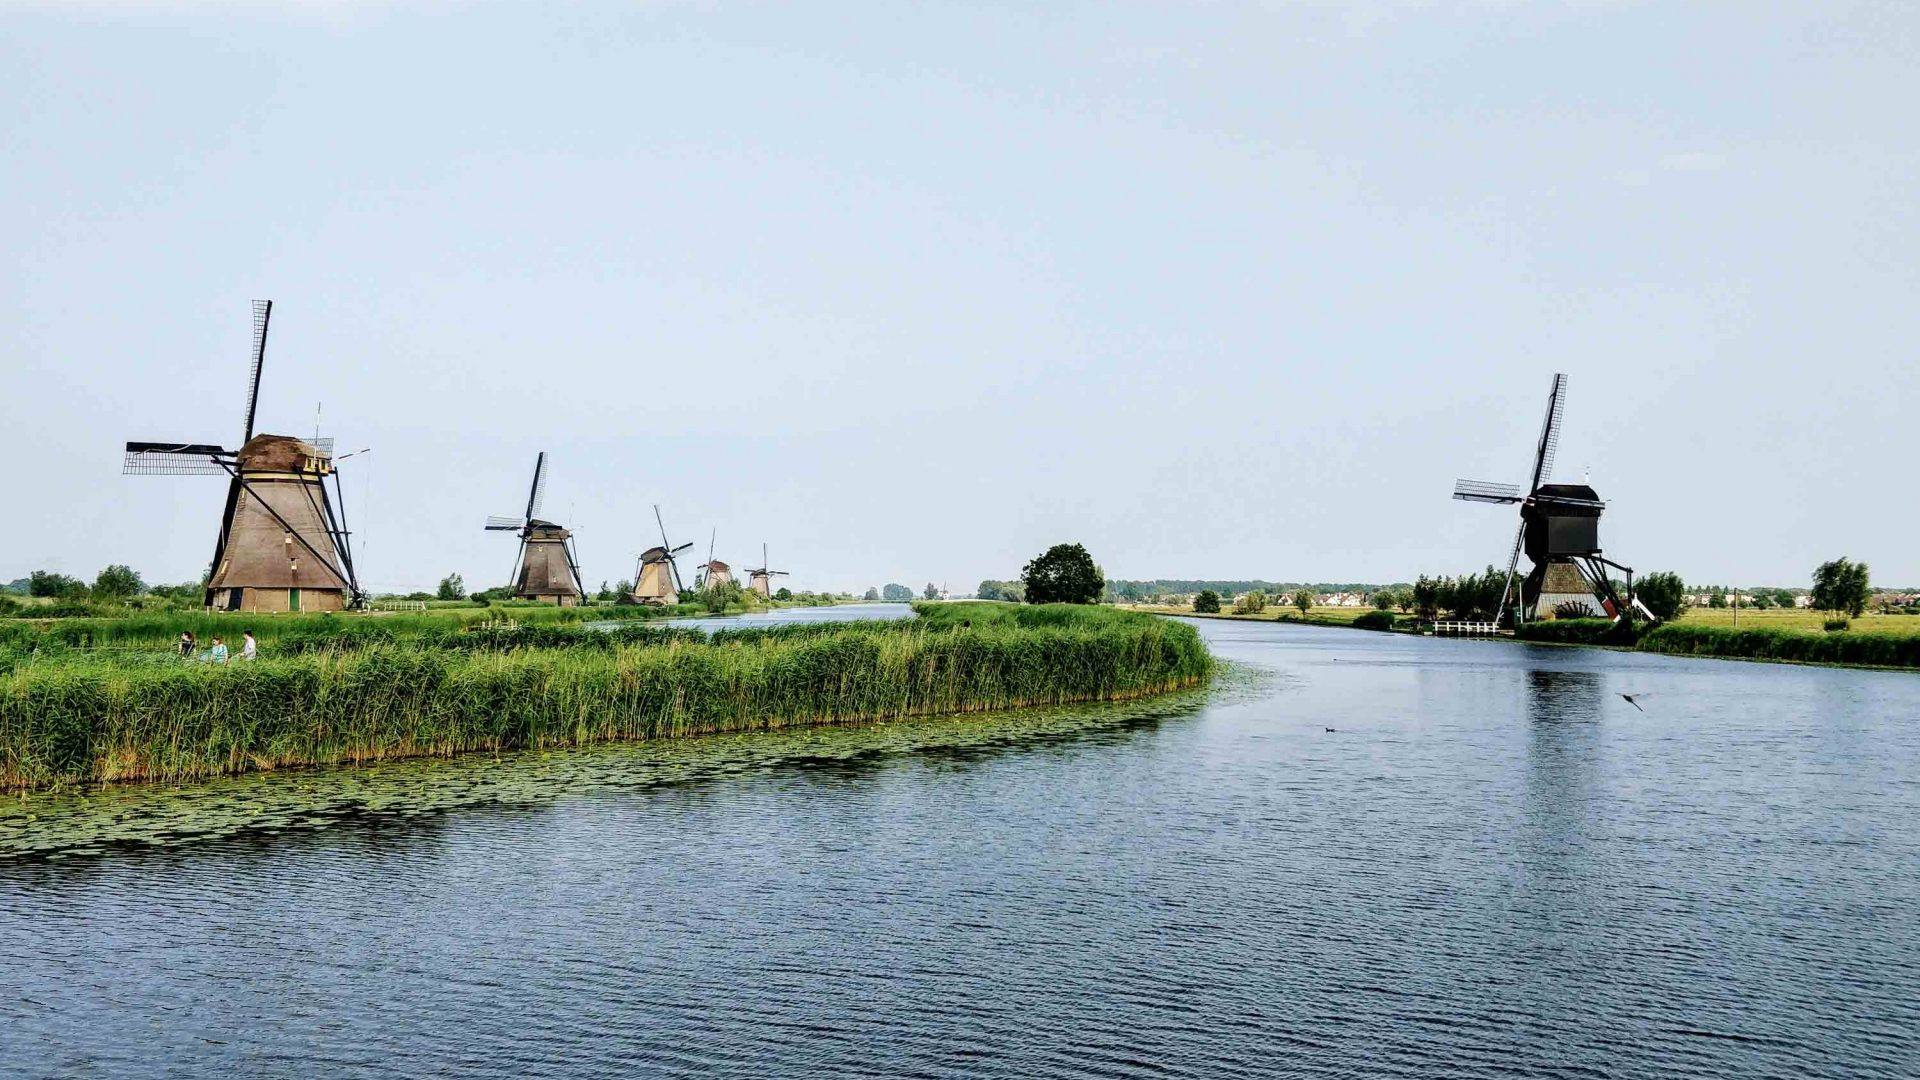 Windmills dot the landscape in Alblasserdam, Netherlands.